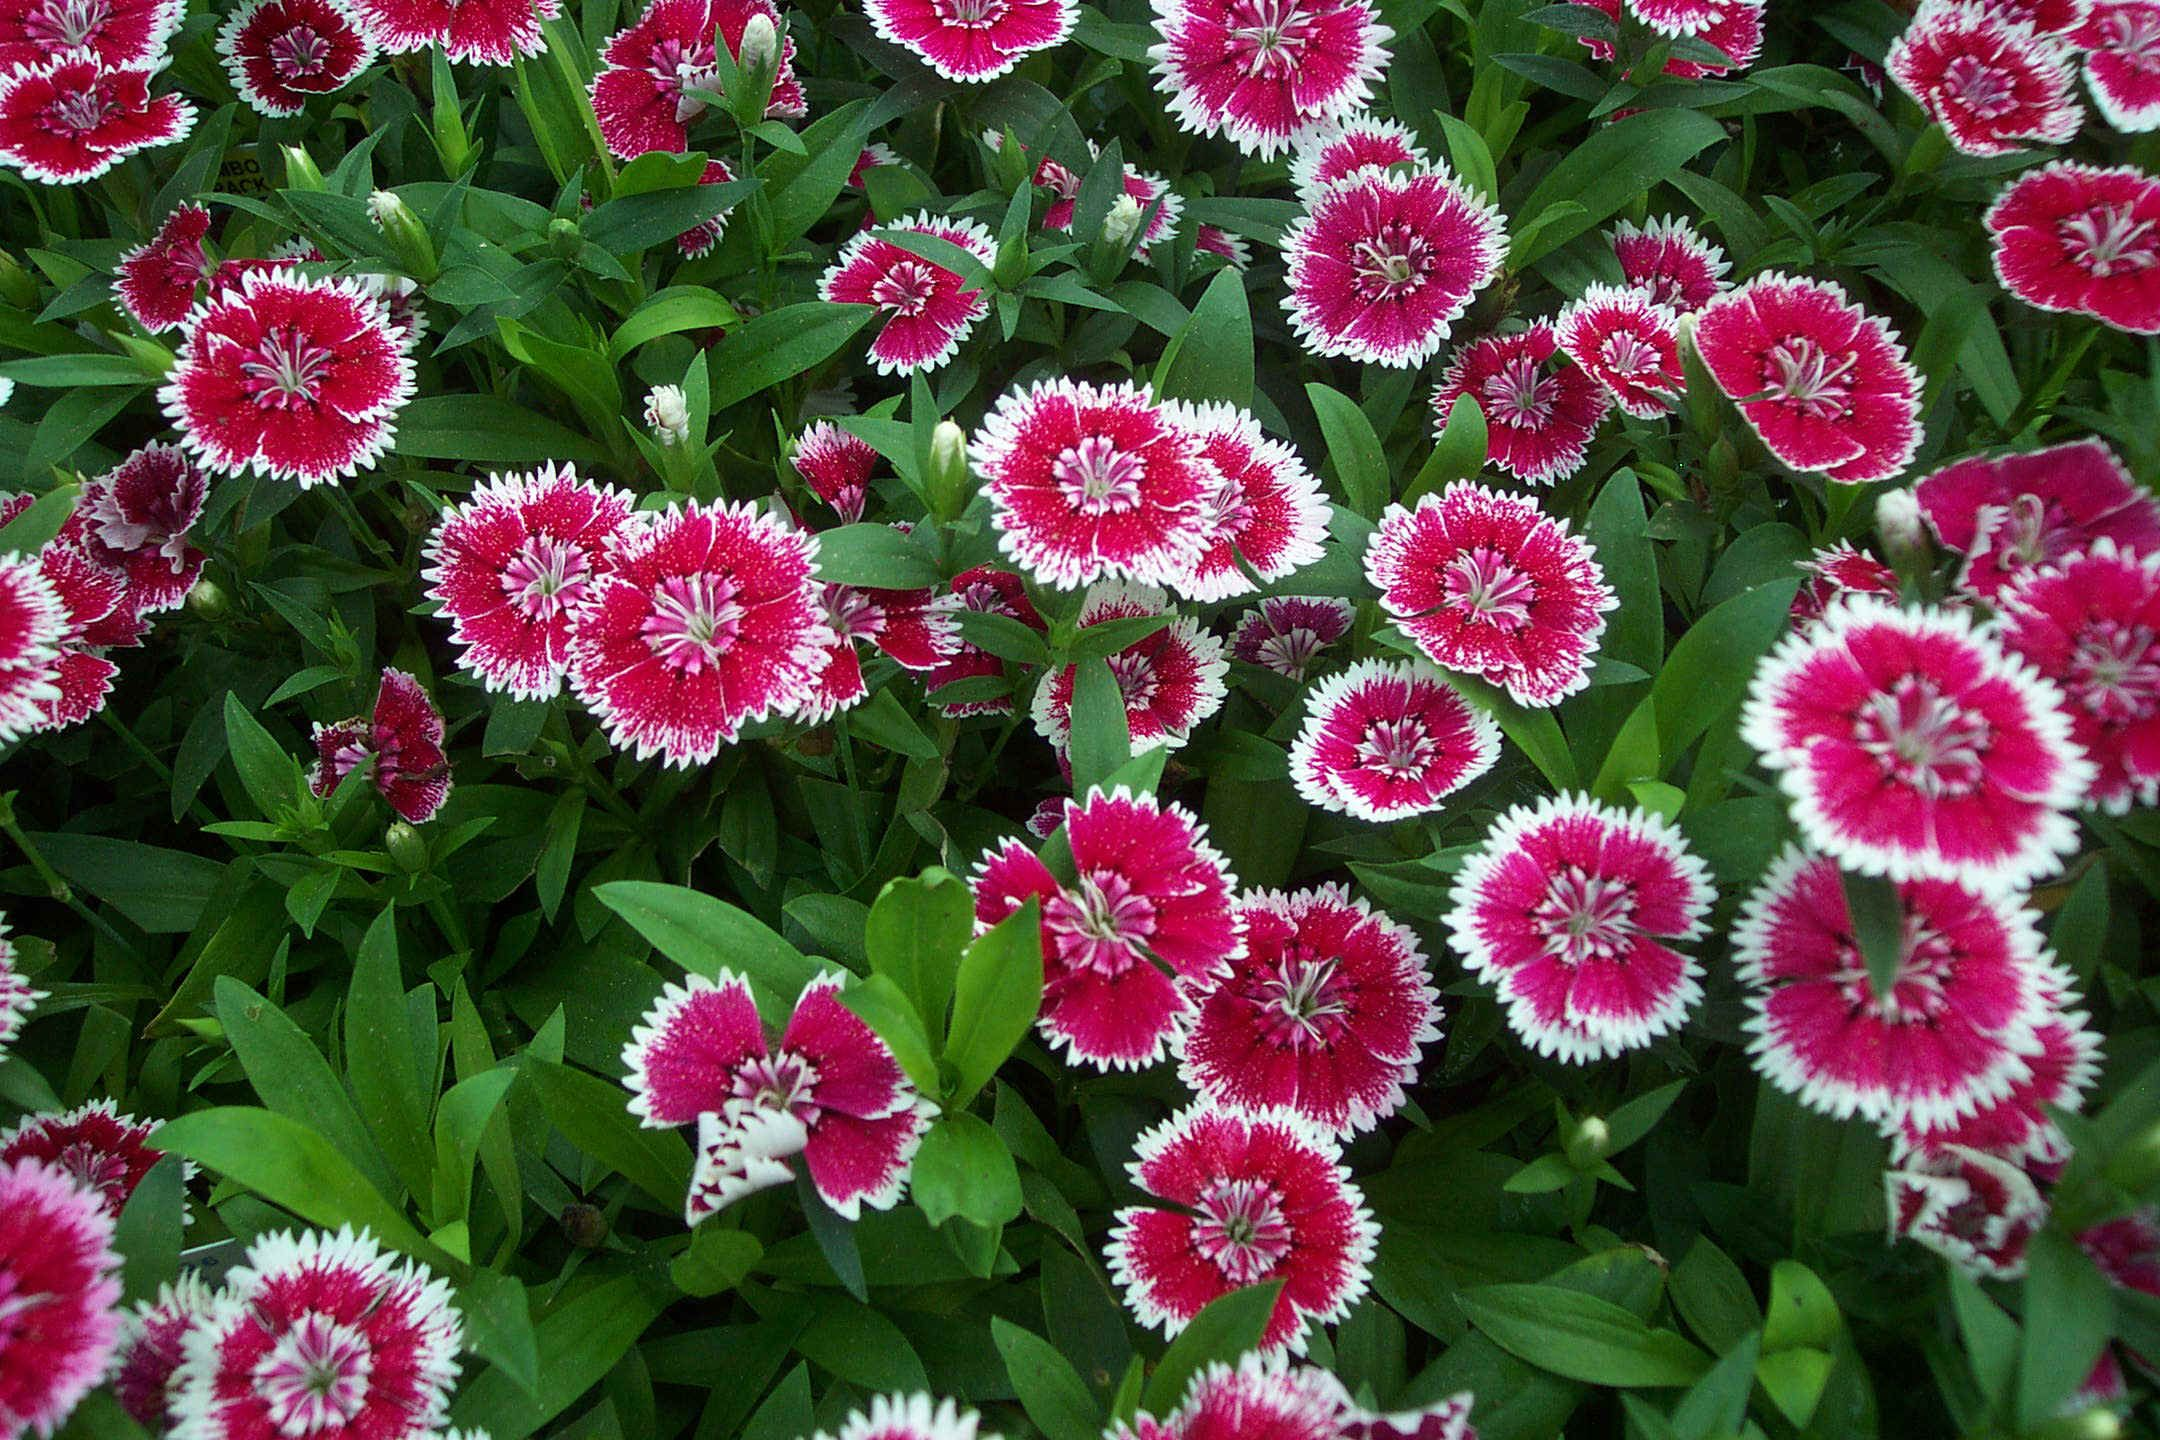 Annual flower pictures and names dianthus dianthus is a genus of annual flower pictures and names dianthus dianthus is a genus of about 300 species of izmirmasajfo Image collections